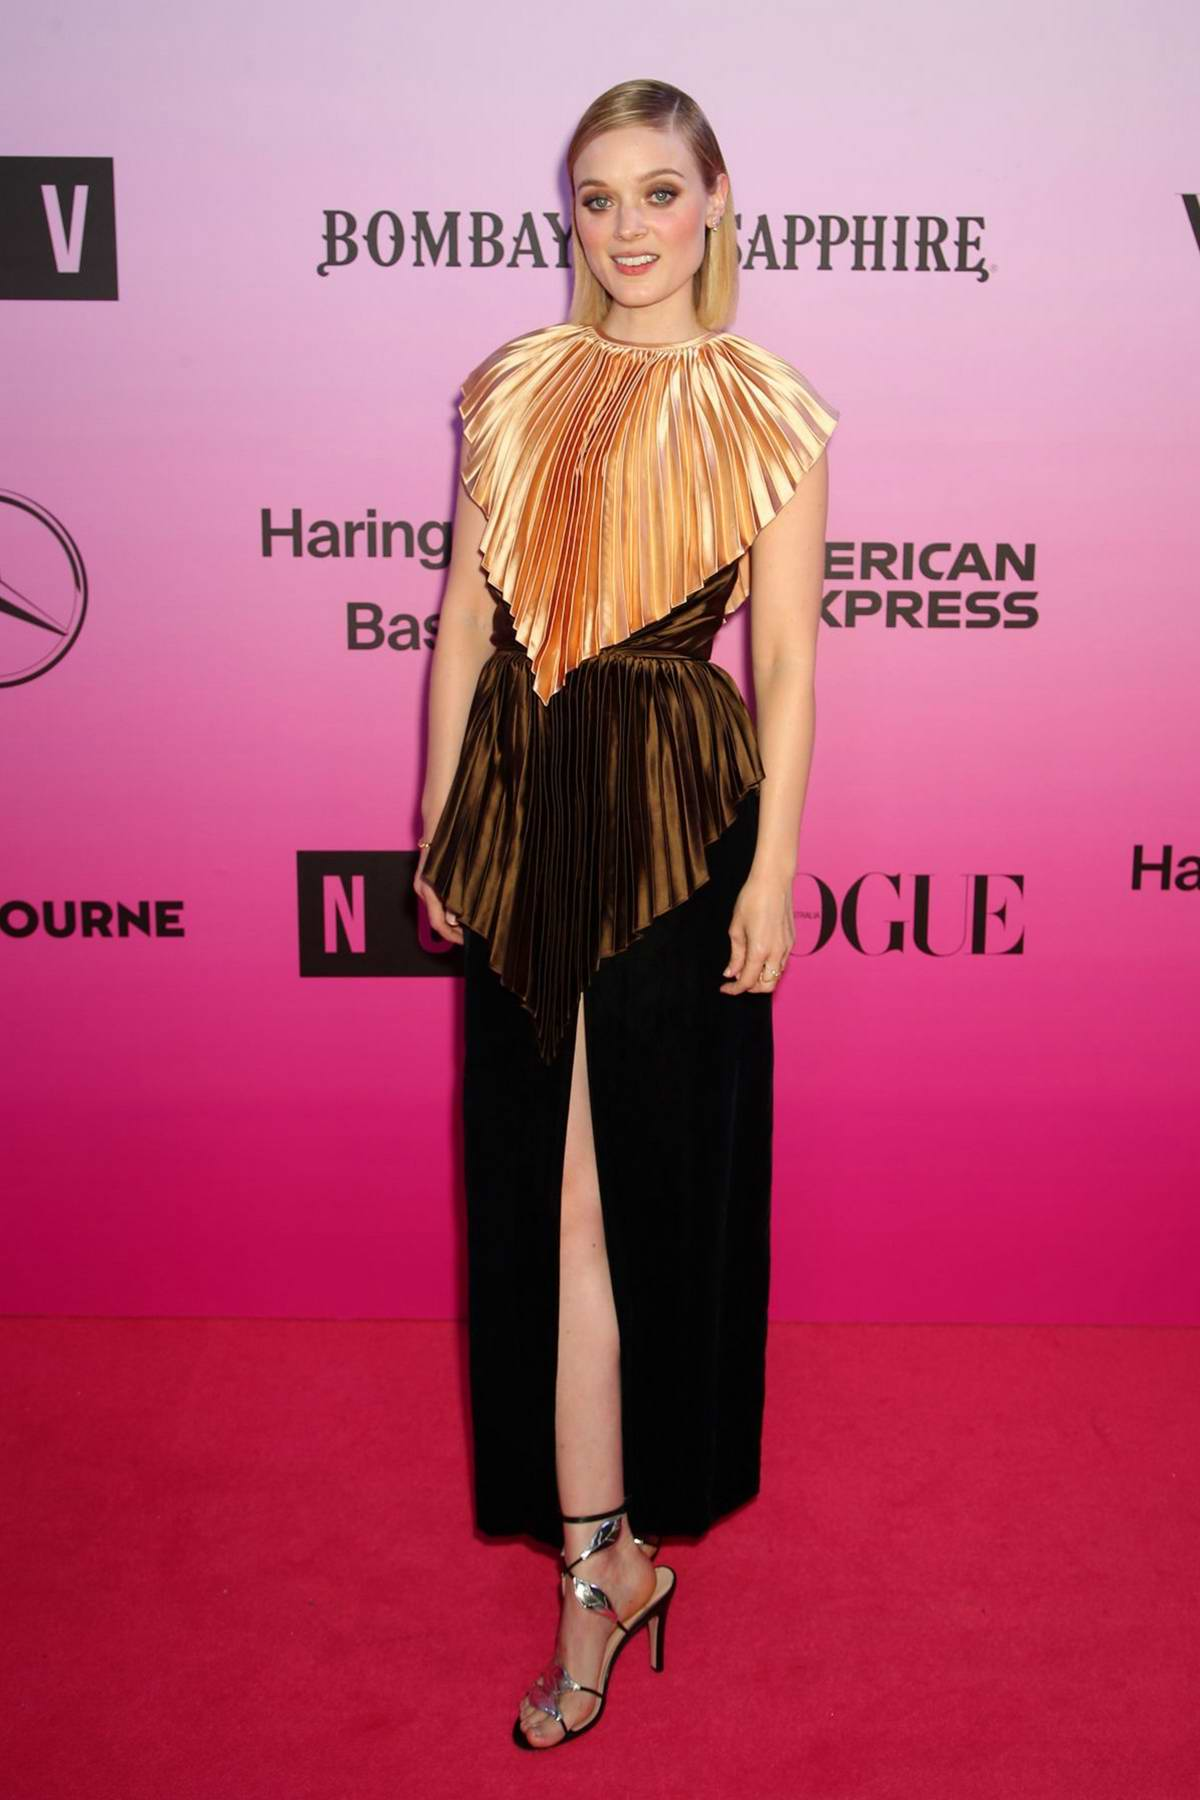 Bella Heathcote attends the NGV Gala in Melbourne, Australia